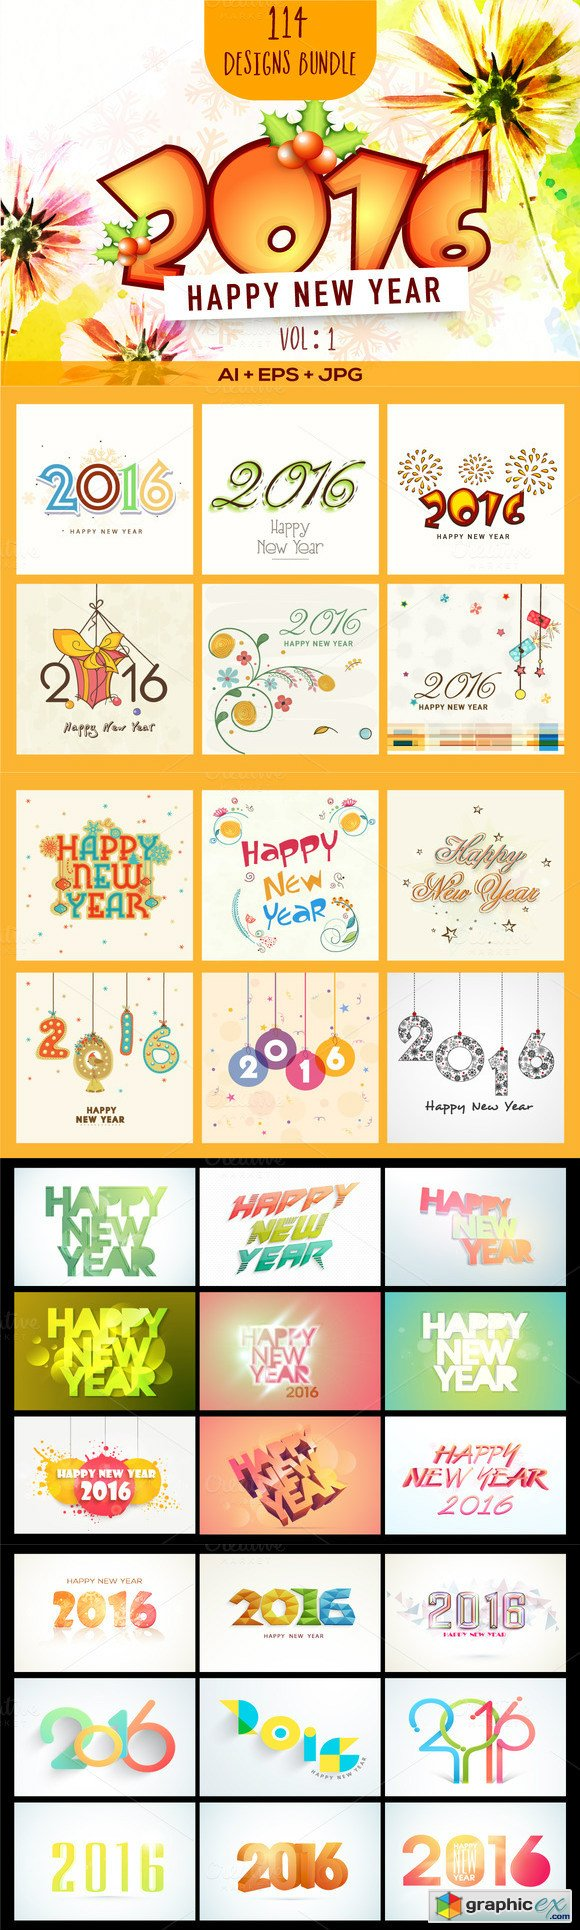 New Year 2016 Bundle - Vol 1